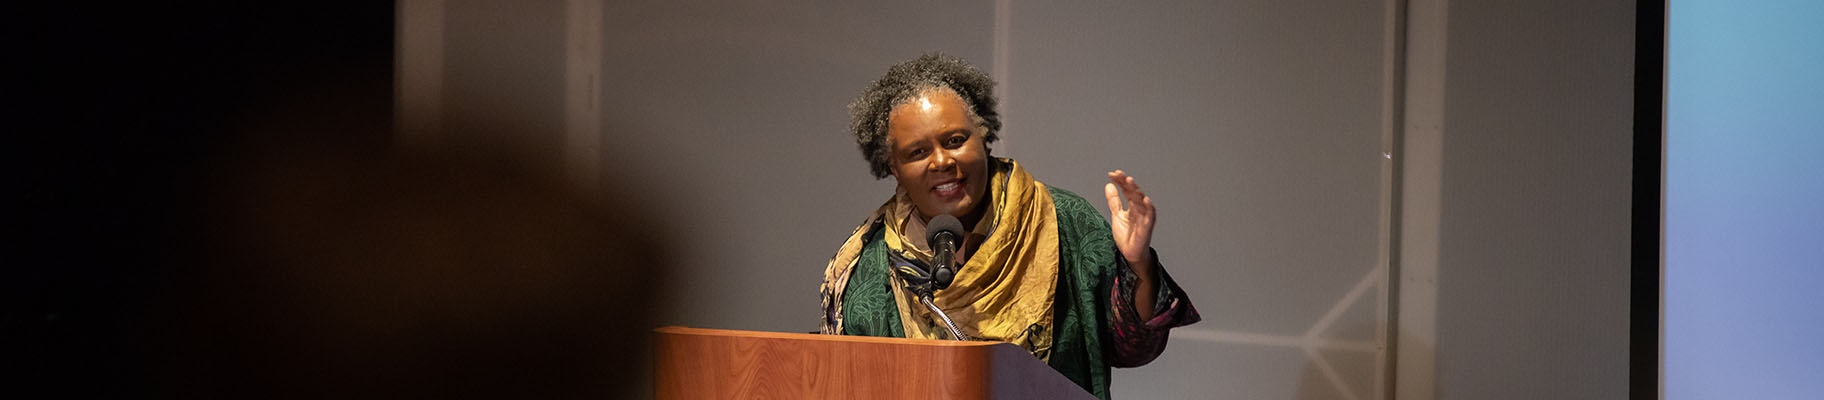 Claudia Rankine Speaks about Citizen: An American Lyric at Concord Academy 2